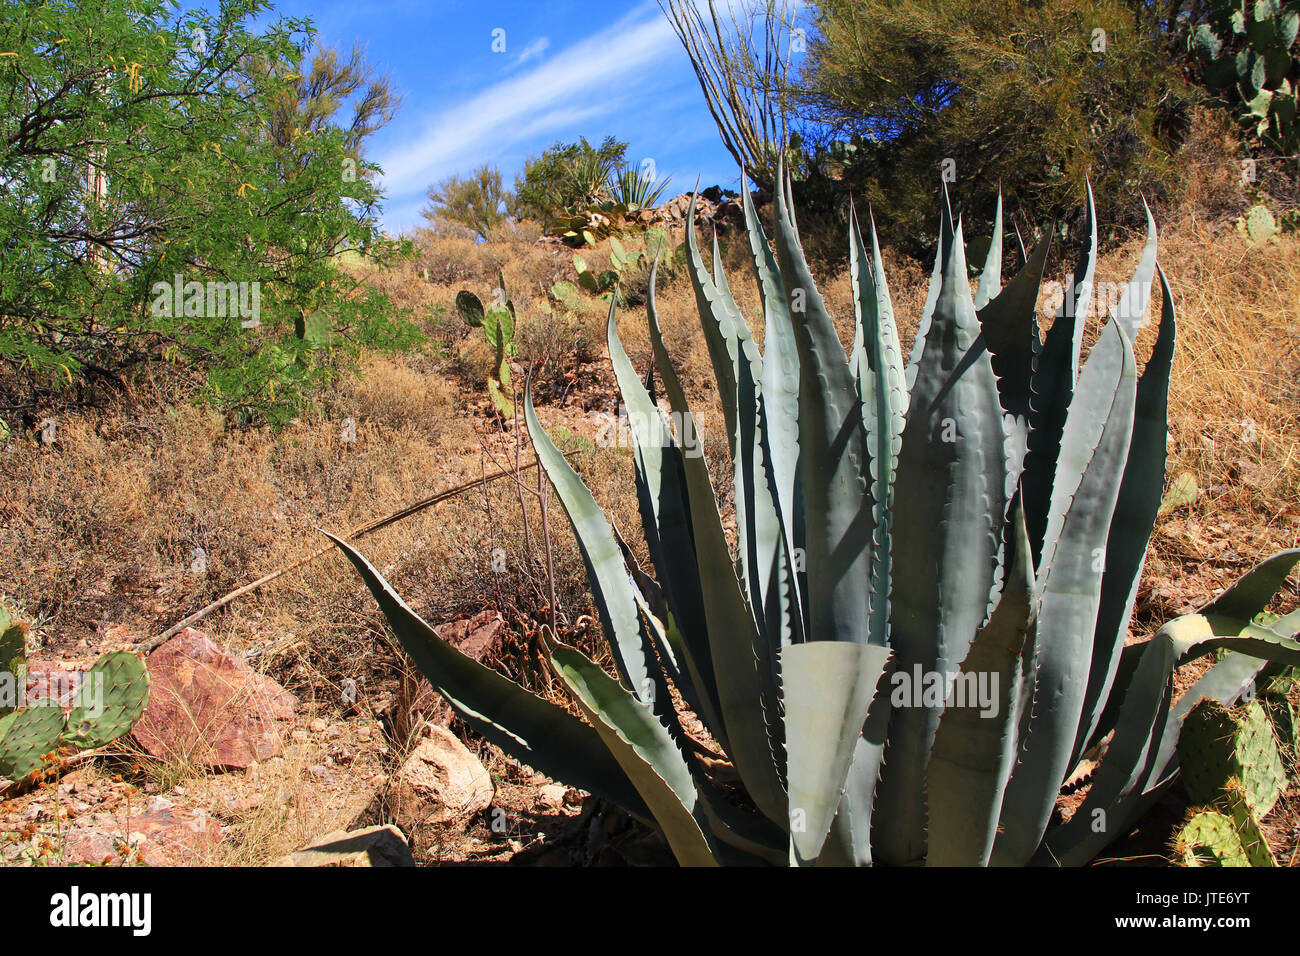 Flat leaves of a bush like agave cactus in Colossal Cave Mountain Park in Vail, Arizona, USA near Tucson. - Stock Image